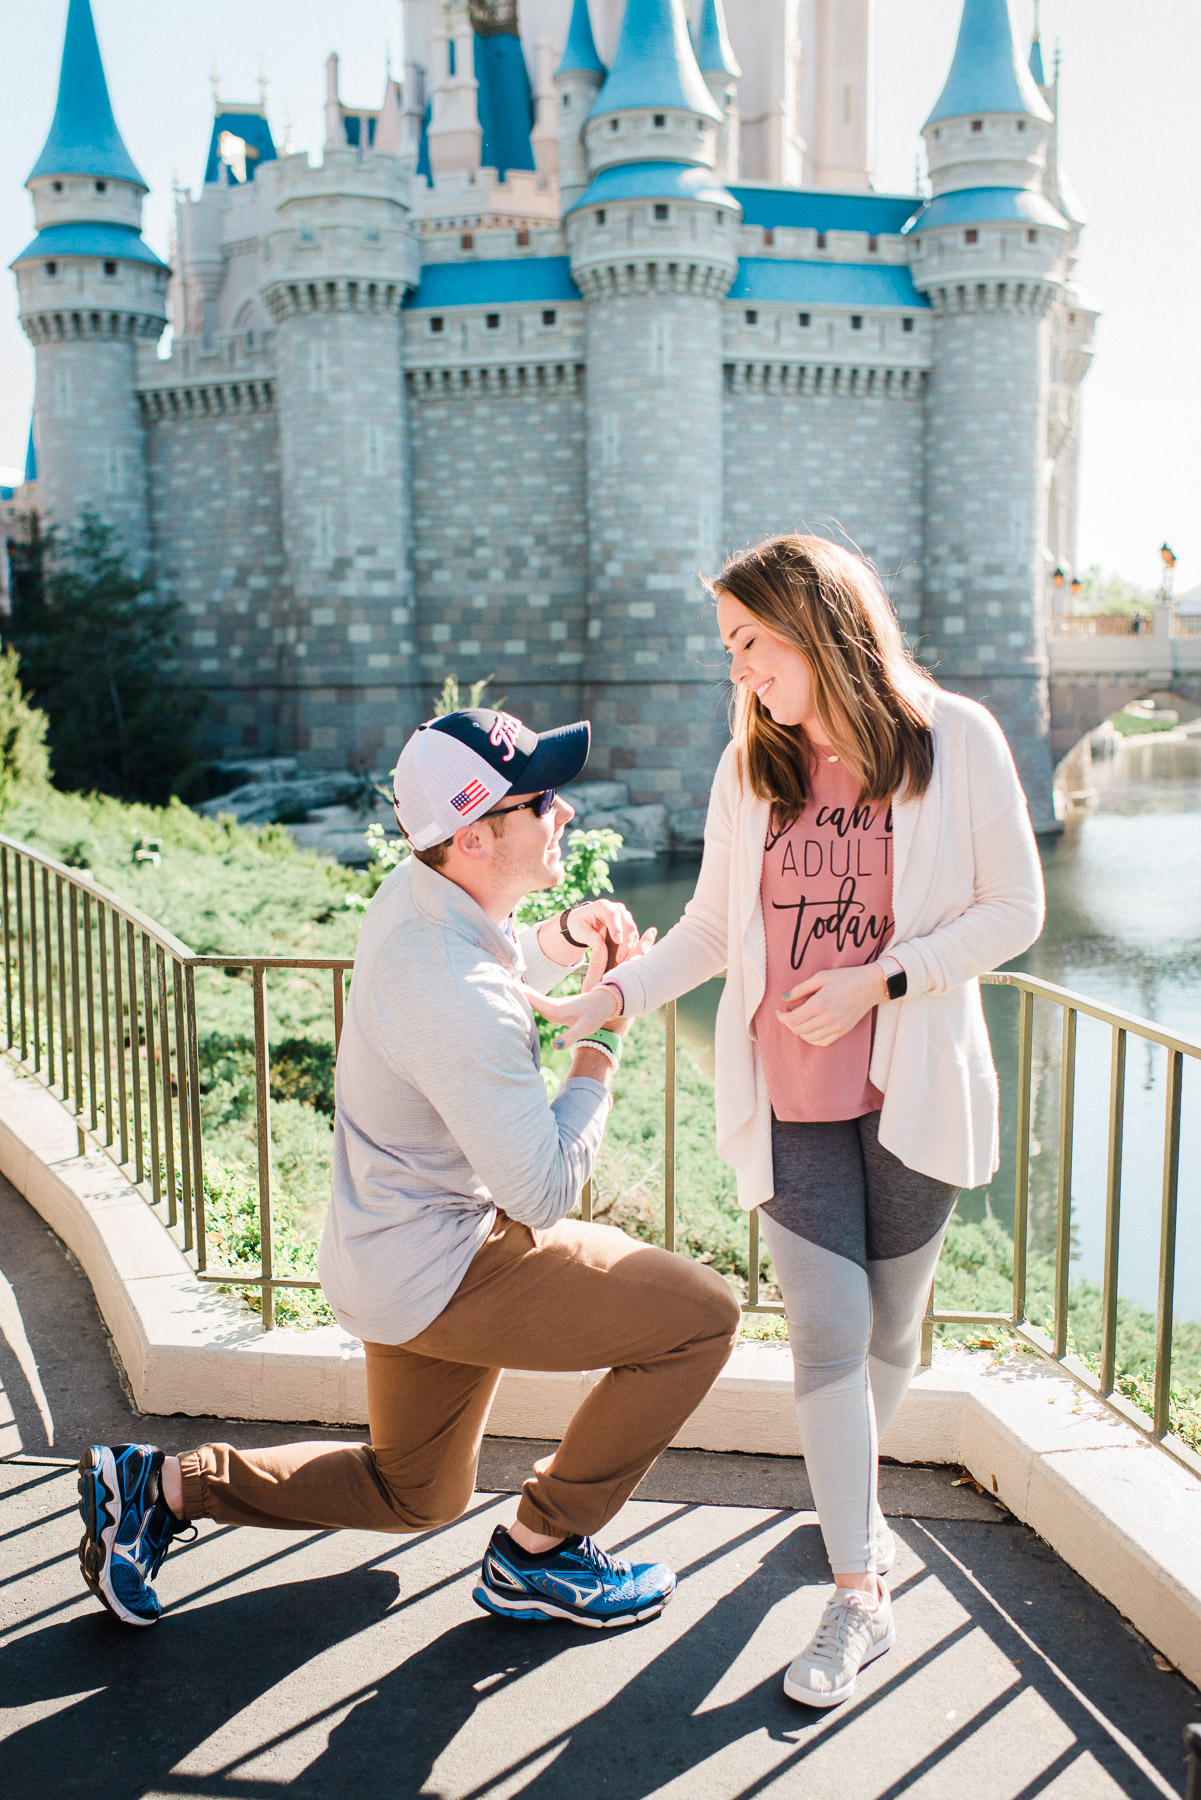 KateTaramykinStudios-Disney-World-Proposal-Kup-9.jpg